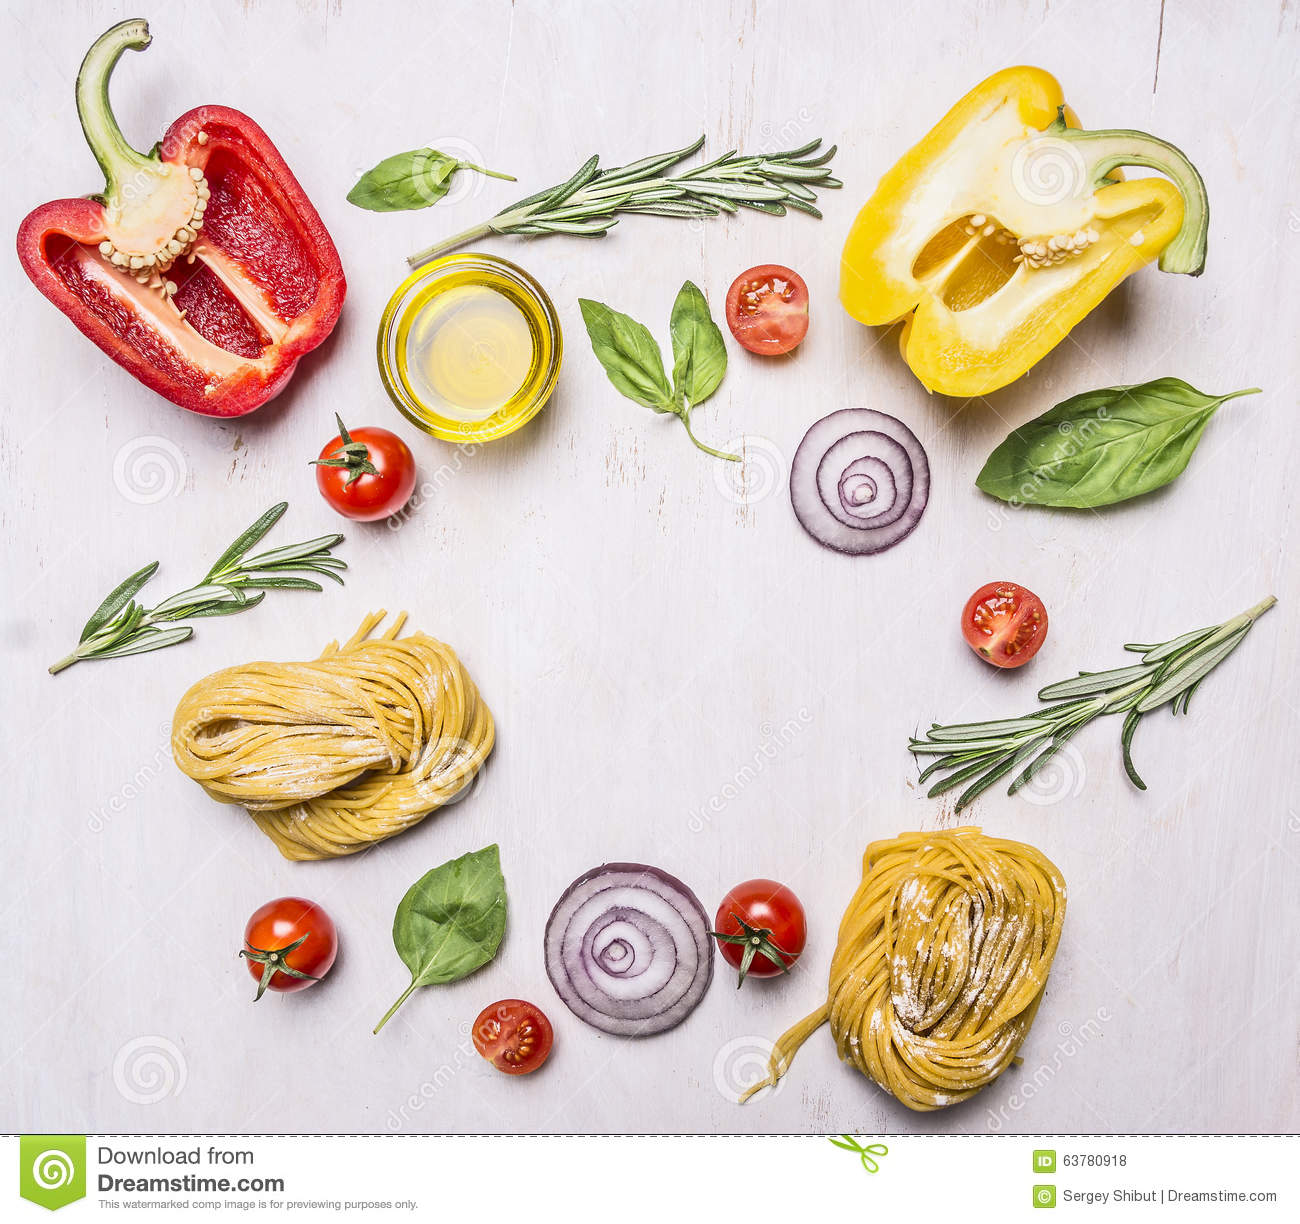 Bell peppers, oil, rosemary, cherry tomatoes and other ingredients for cooking vegetarian pasta, lined frame wooden rustic back